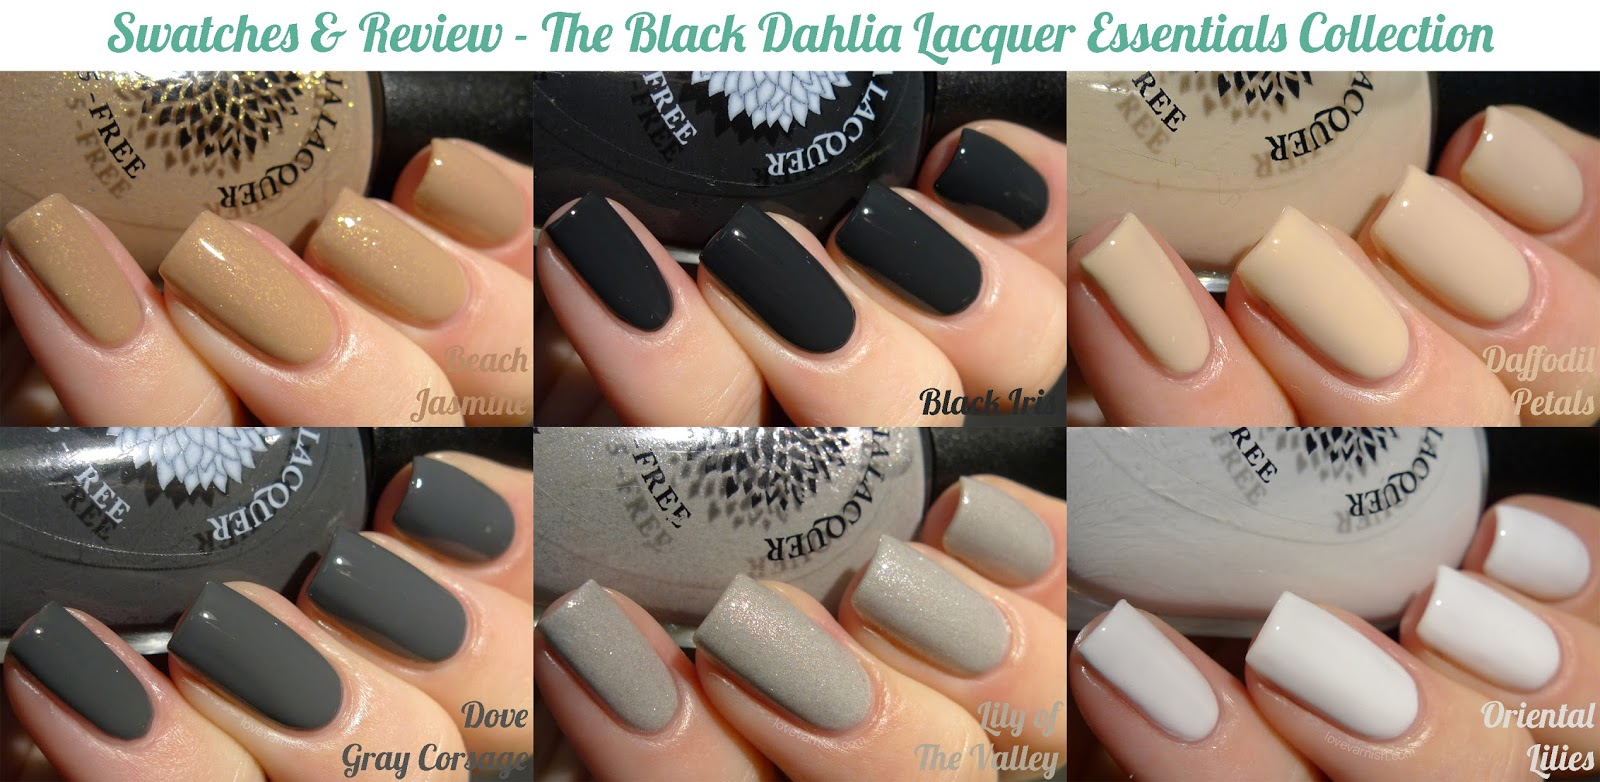 Black Dahlia Lacquer Essentials collection collage